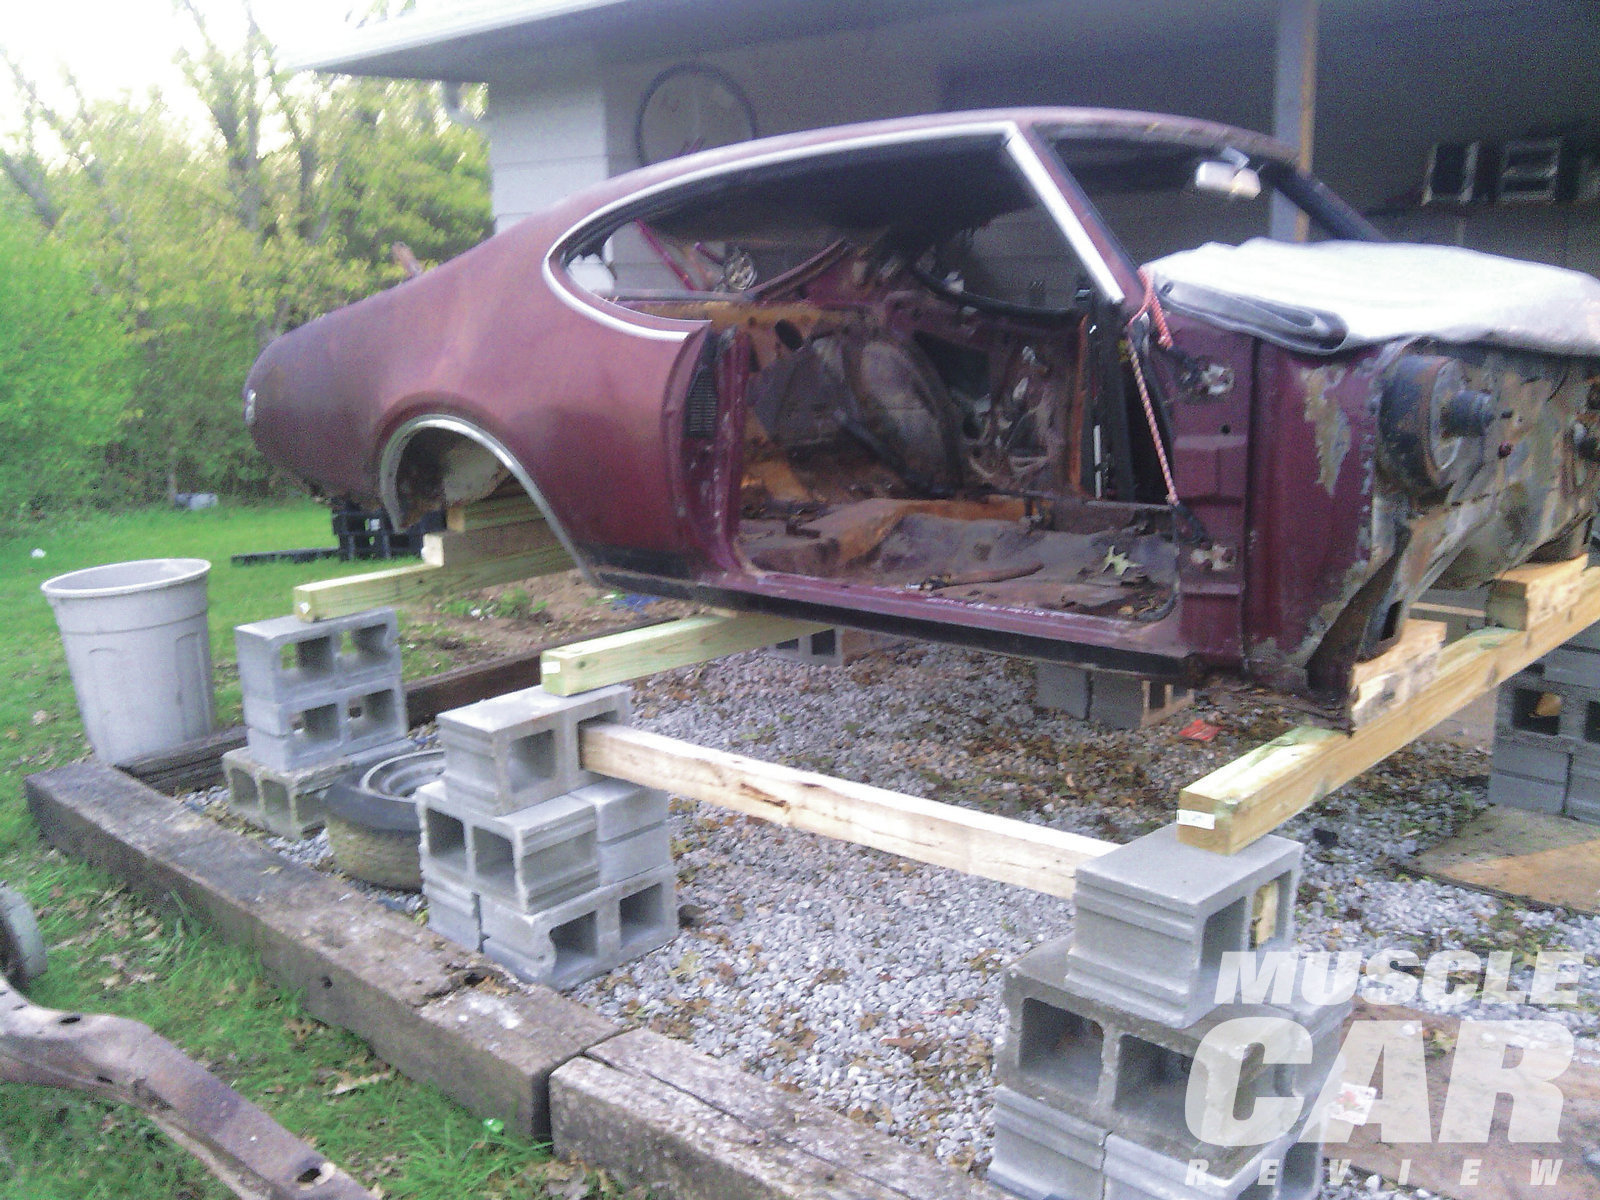 """Adam wasted no time getting started on the Olds. He stripped the car and set it on 4x4 posts and cement blocks. """"All the body panels will be covered for winter, and hopefully next spring I can get started on it again."""""""